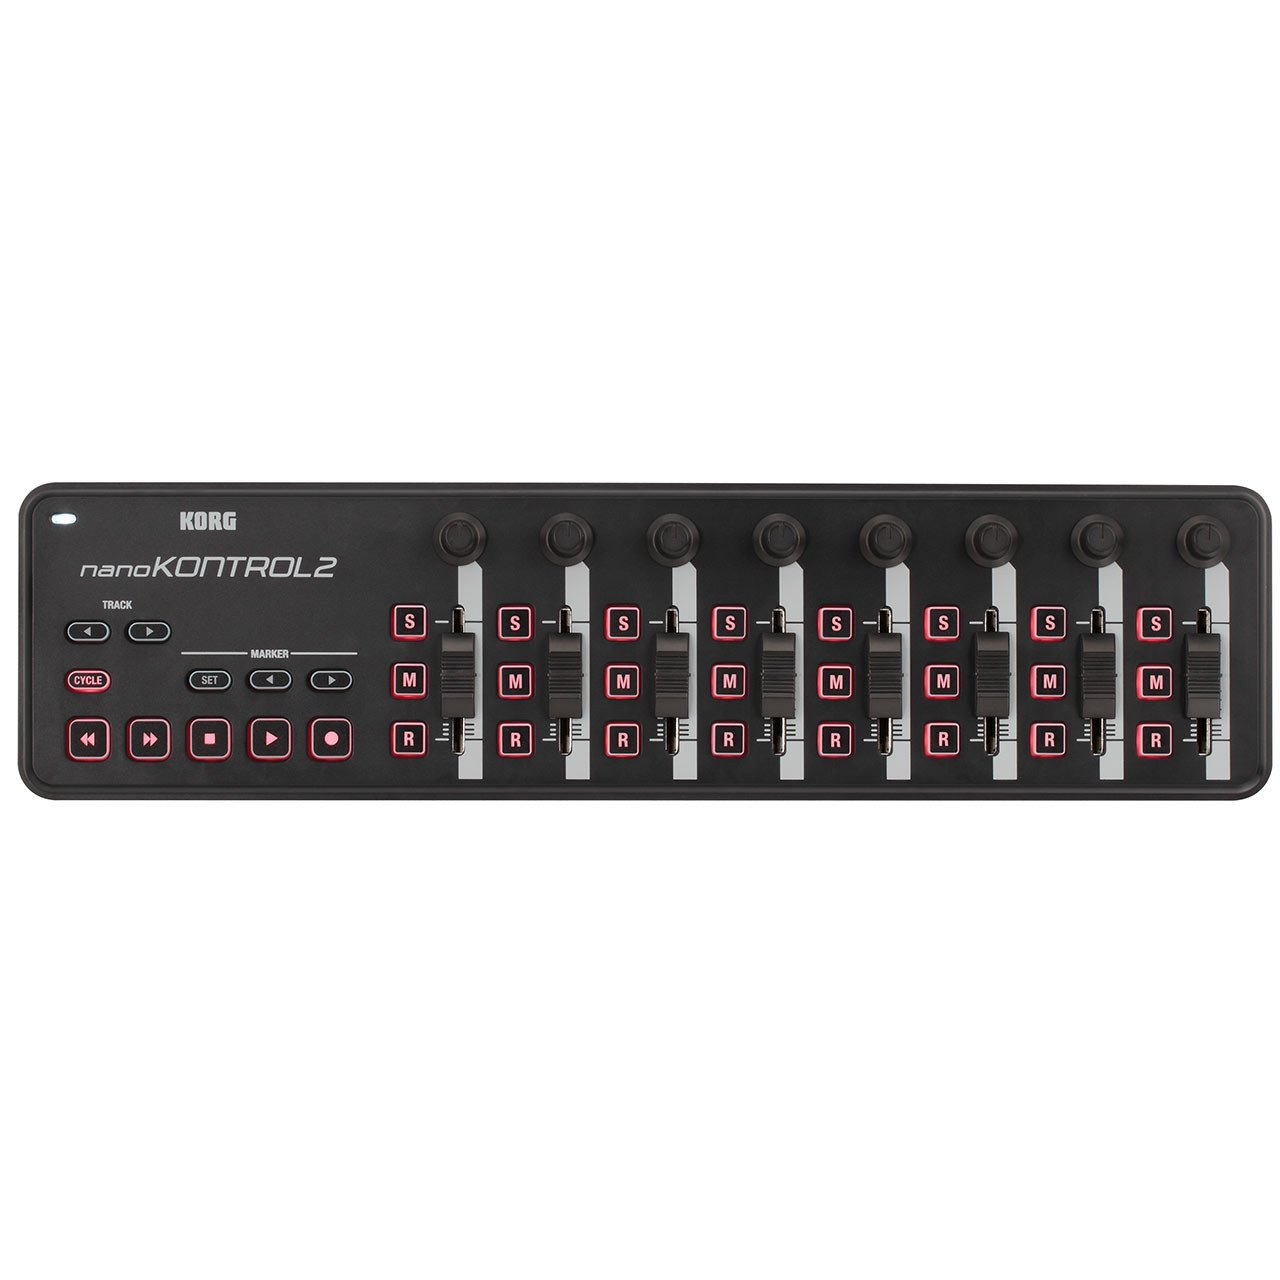 Control Surfaces - Korg NanoKONTROL 2 Slim-Line USB Control Surface BLACK